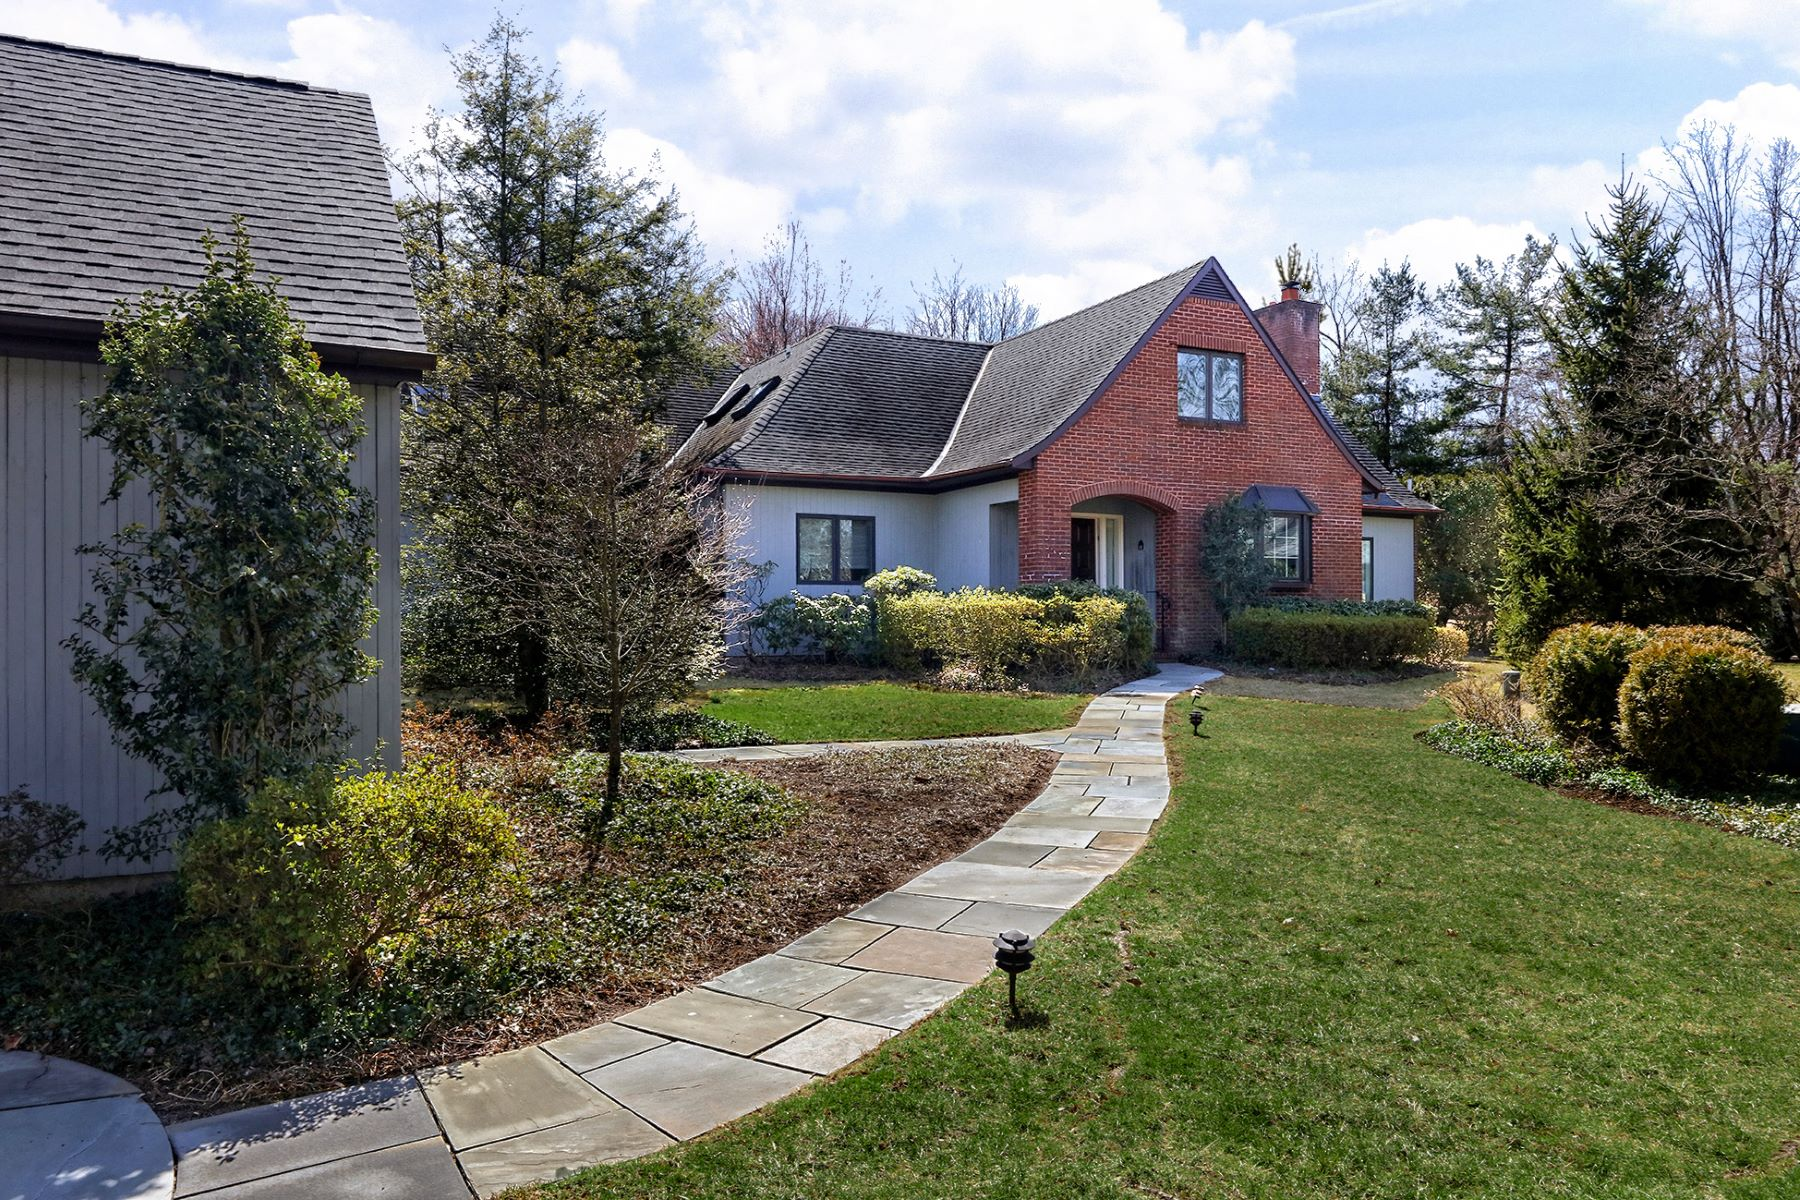 Single Family Home for Sale at One of the Largest Floorplans in Constitution Hill 41 Constitution Hill West, Princeton, New Jersey 08540 United StatesMunicipality: Princeton